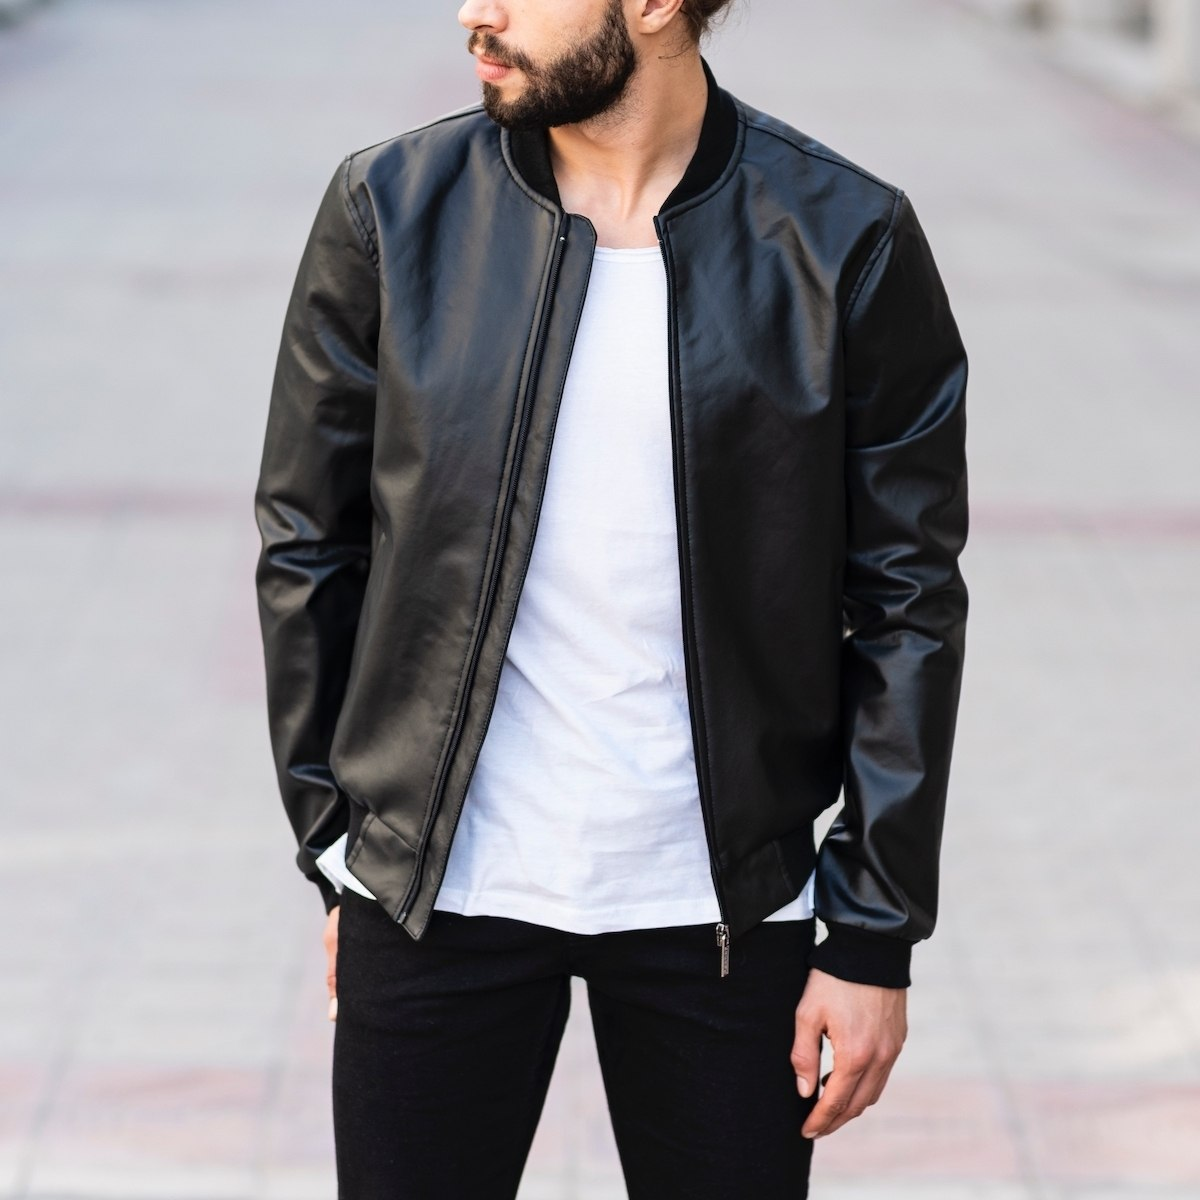 Full Black Bomber Jacket